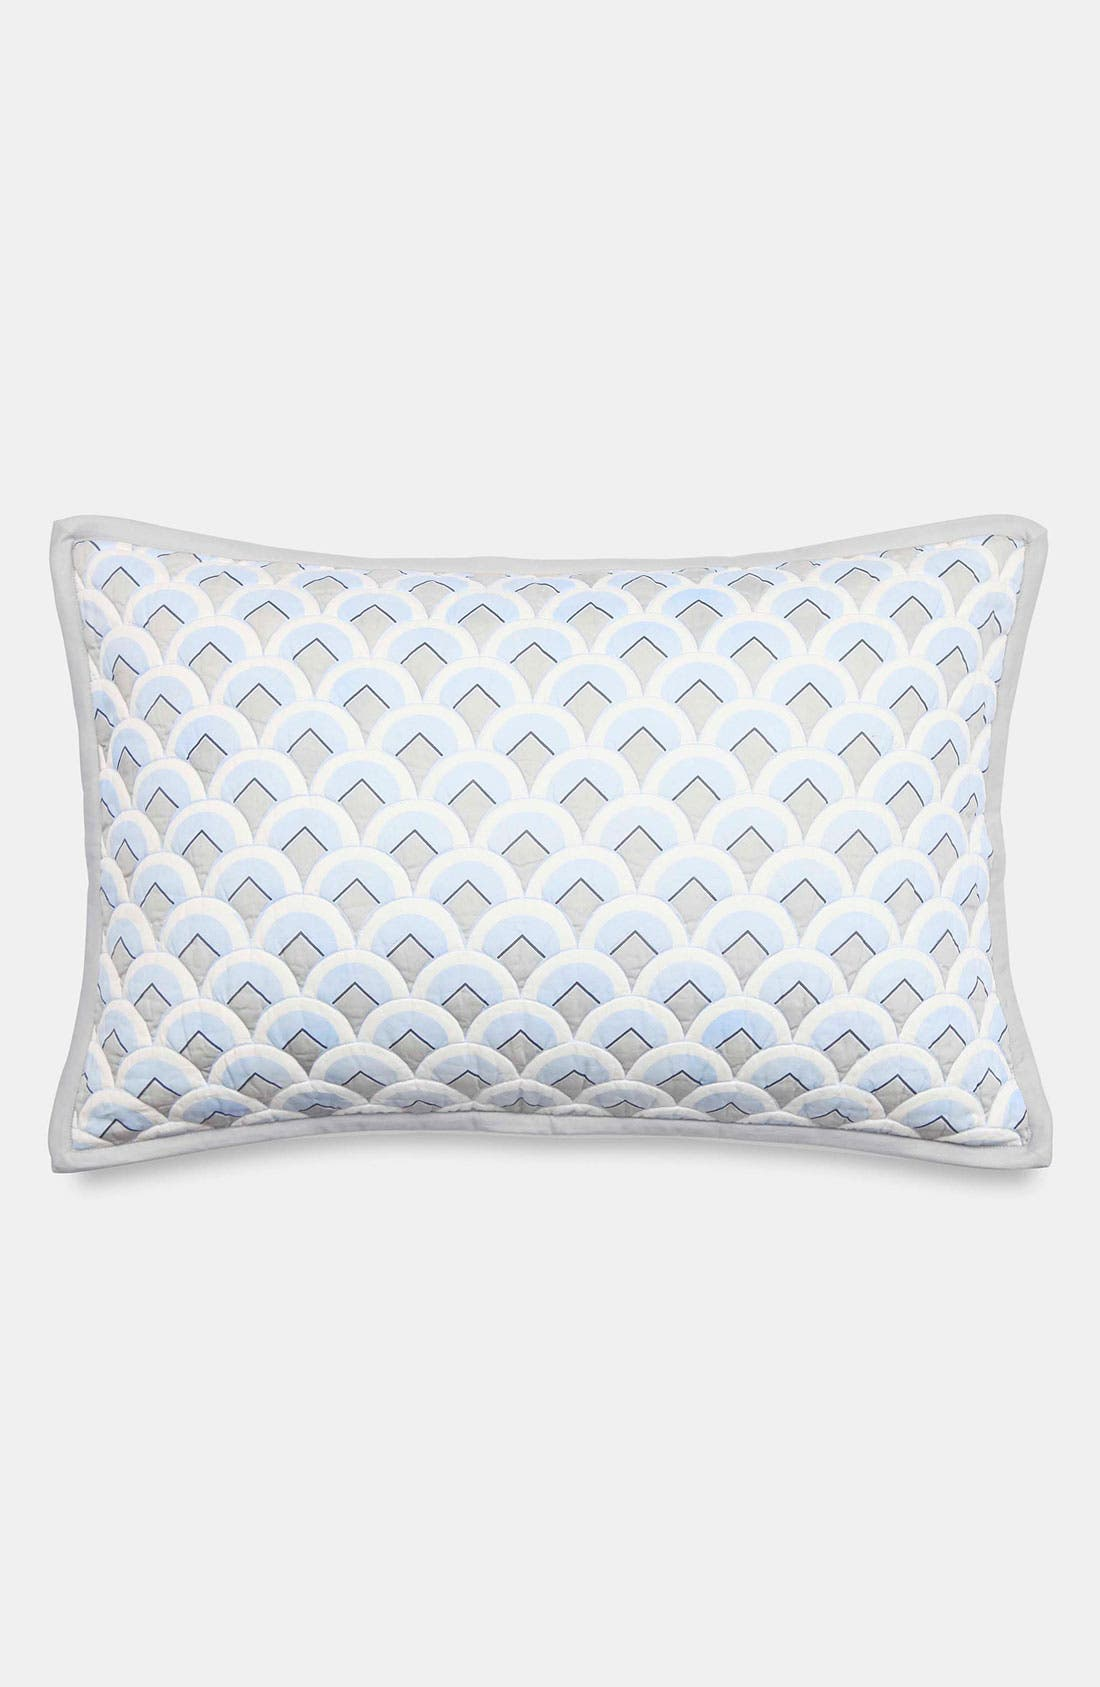 Alternate Image 1 Selected - kate spade new york 'deco geo' 400 thread count pillow sham